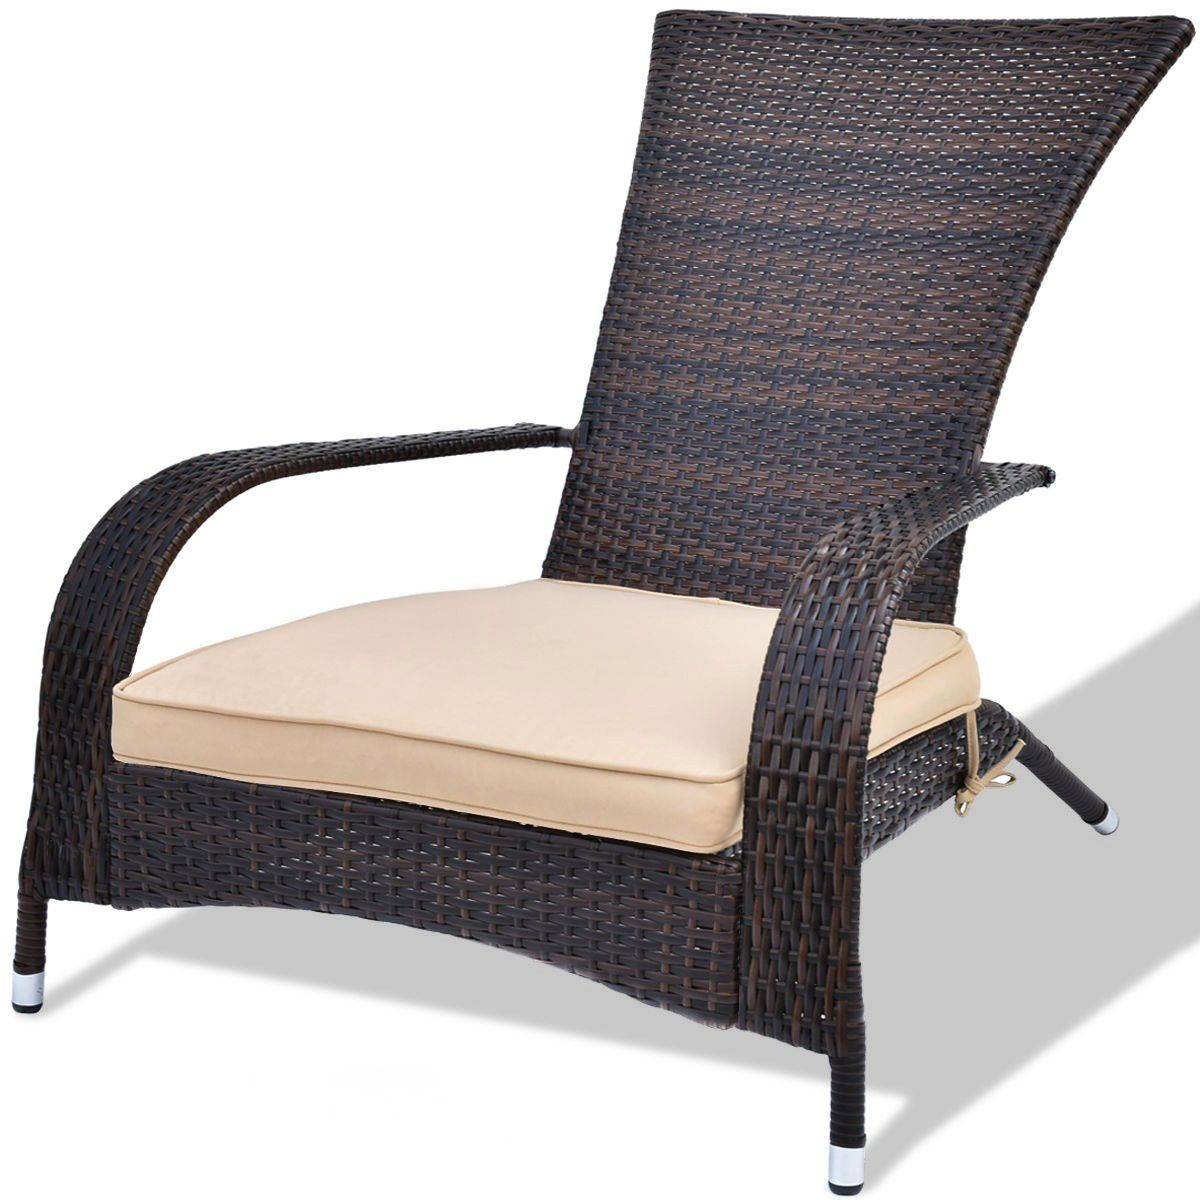 On Sale 85 Delivered Outdoor Rattan Wicker Adirondack Chair W Seat Cushion Weathered Furniture Outdoor Chairs Adirondack Chairs Patio